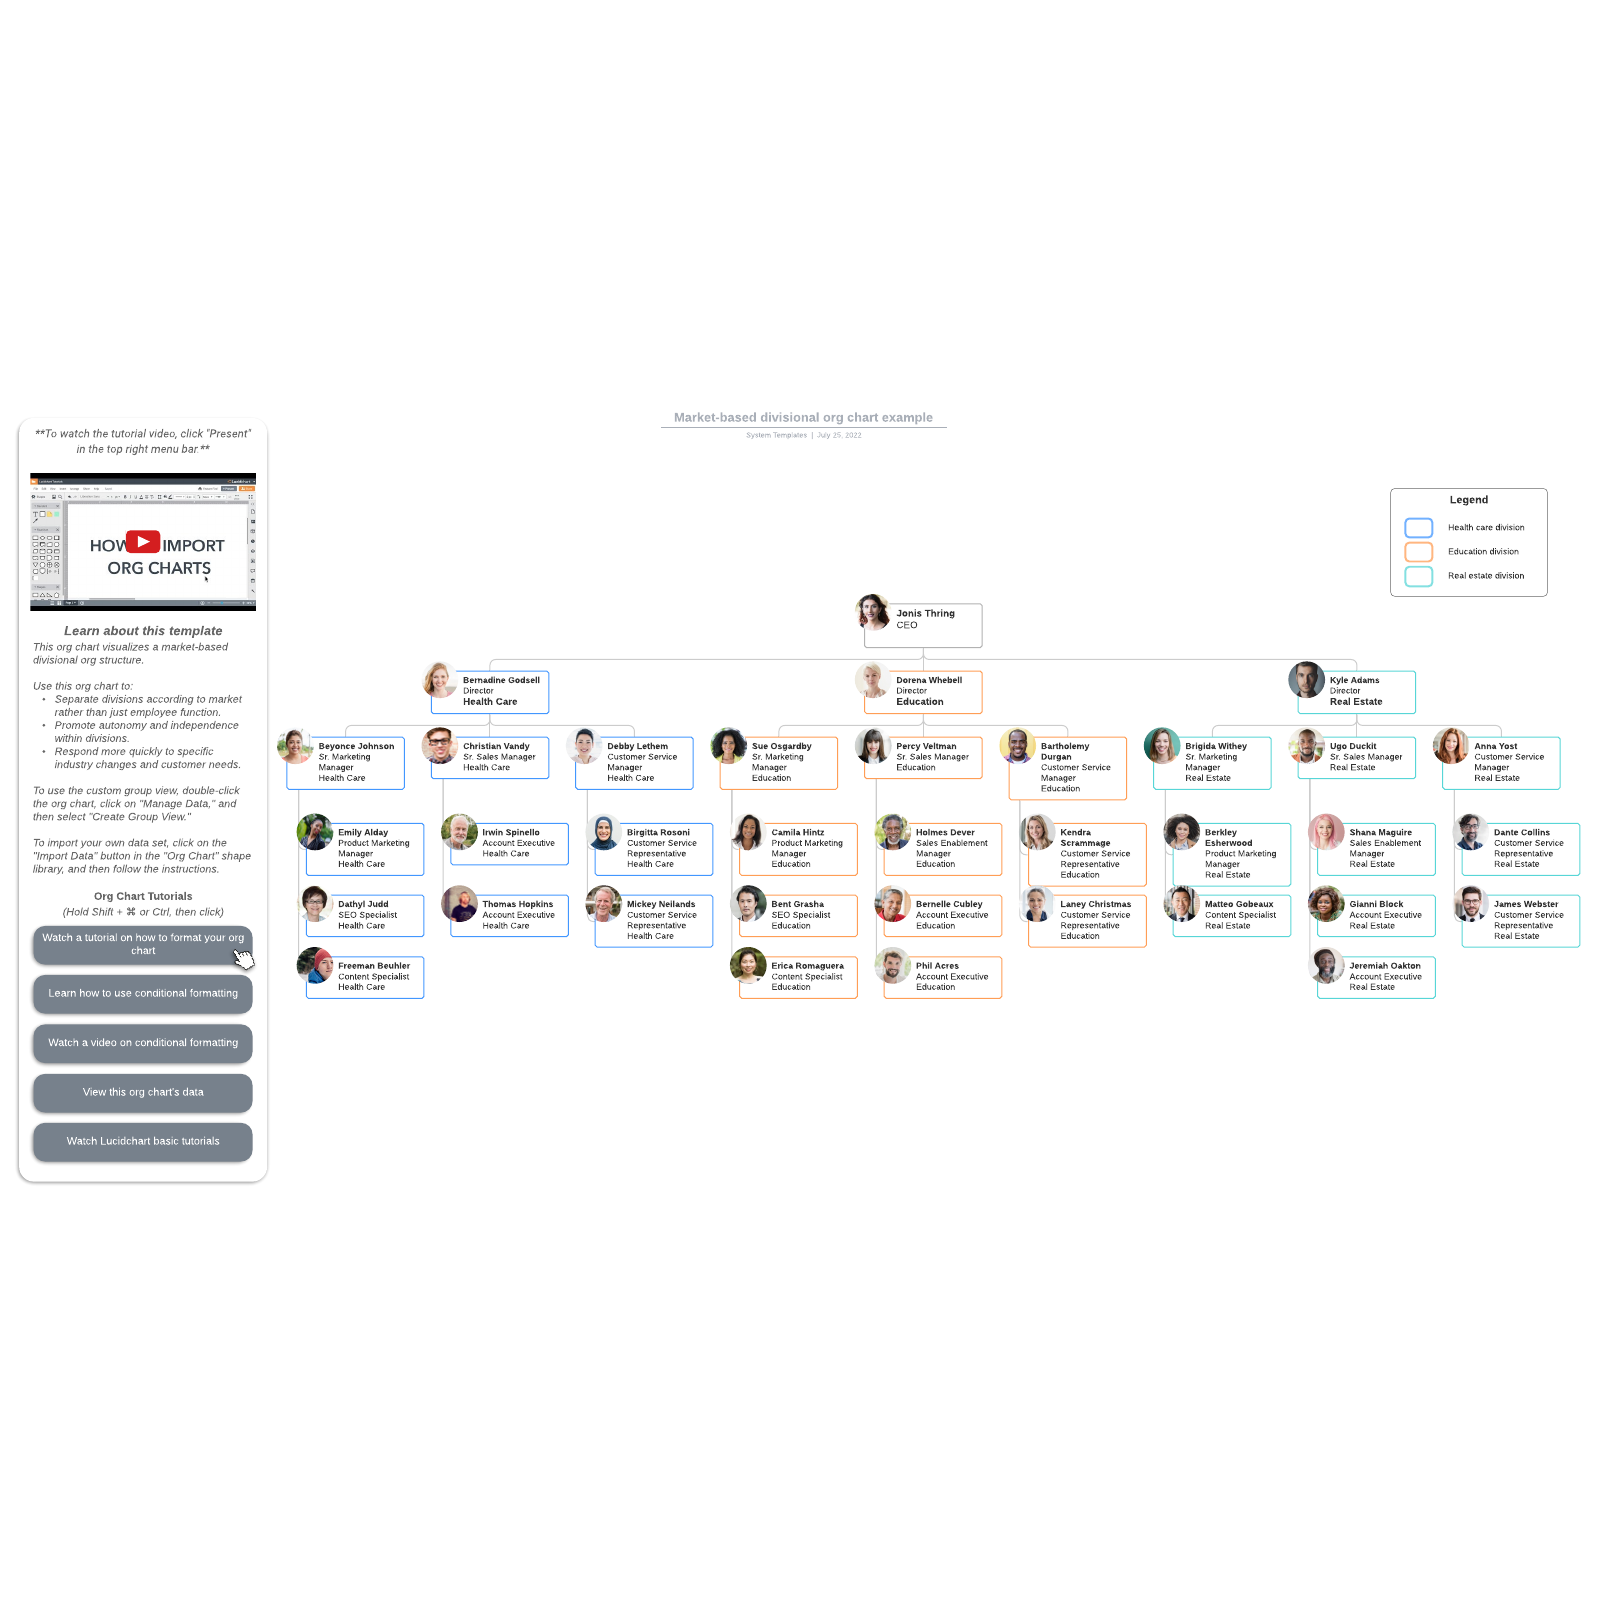 Market-based divisional org chart example